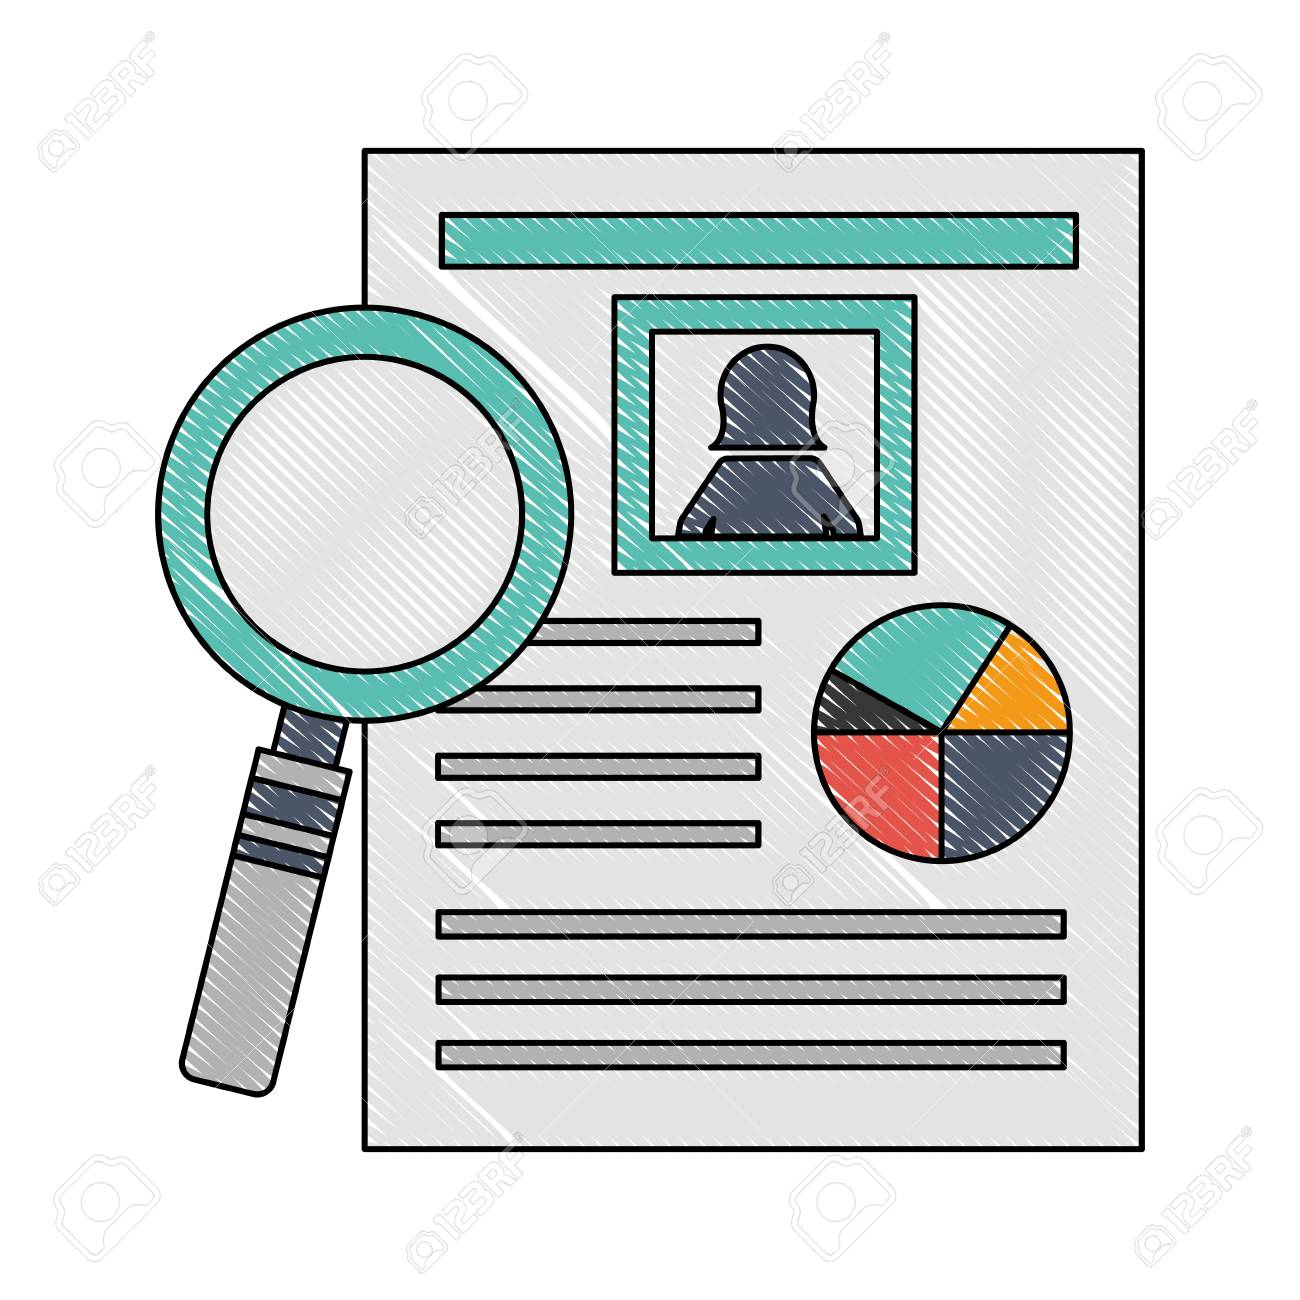 Magnifying glass vector icons Vector Clip Art Royalty Free. 52,876 Magnifying  glass vector icons clipart vector EPS illustrations and images available to  search from thousands of stock illustration designers.